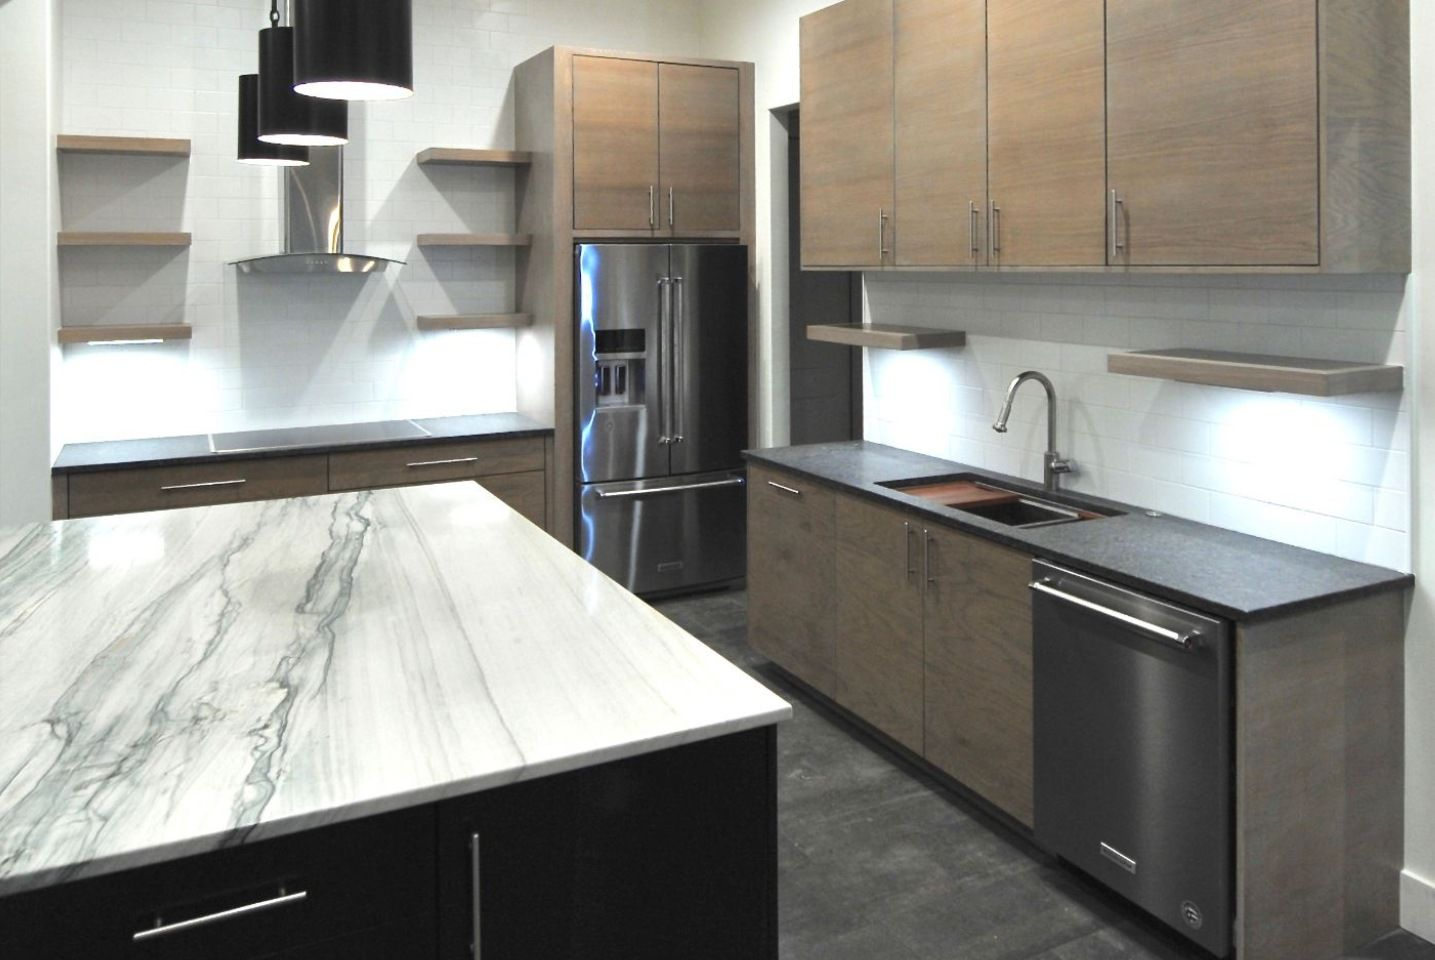 C1 2 In 2020 Installing Cabinets Contemporary Cabinets Cabinet Makers